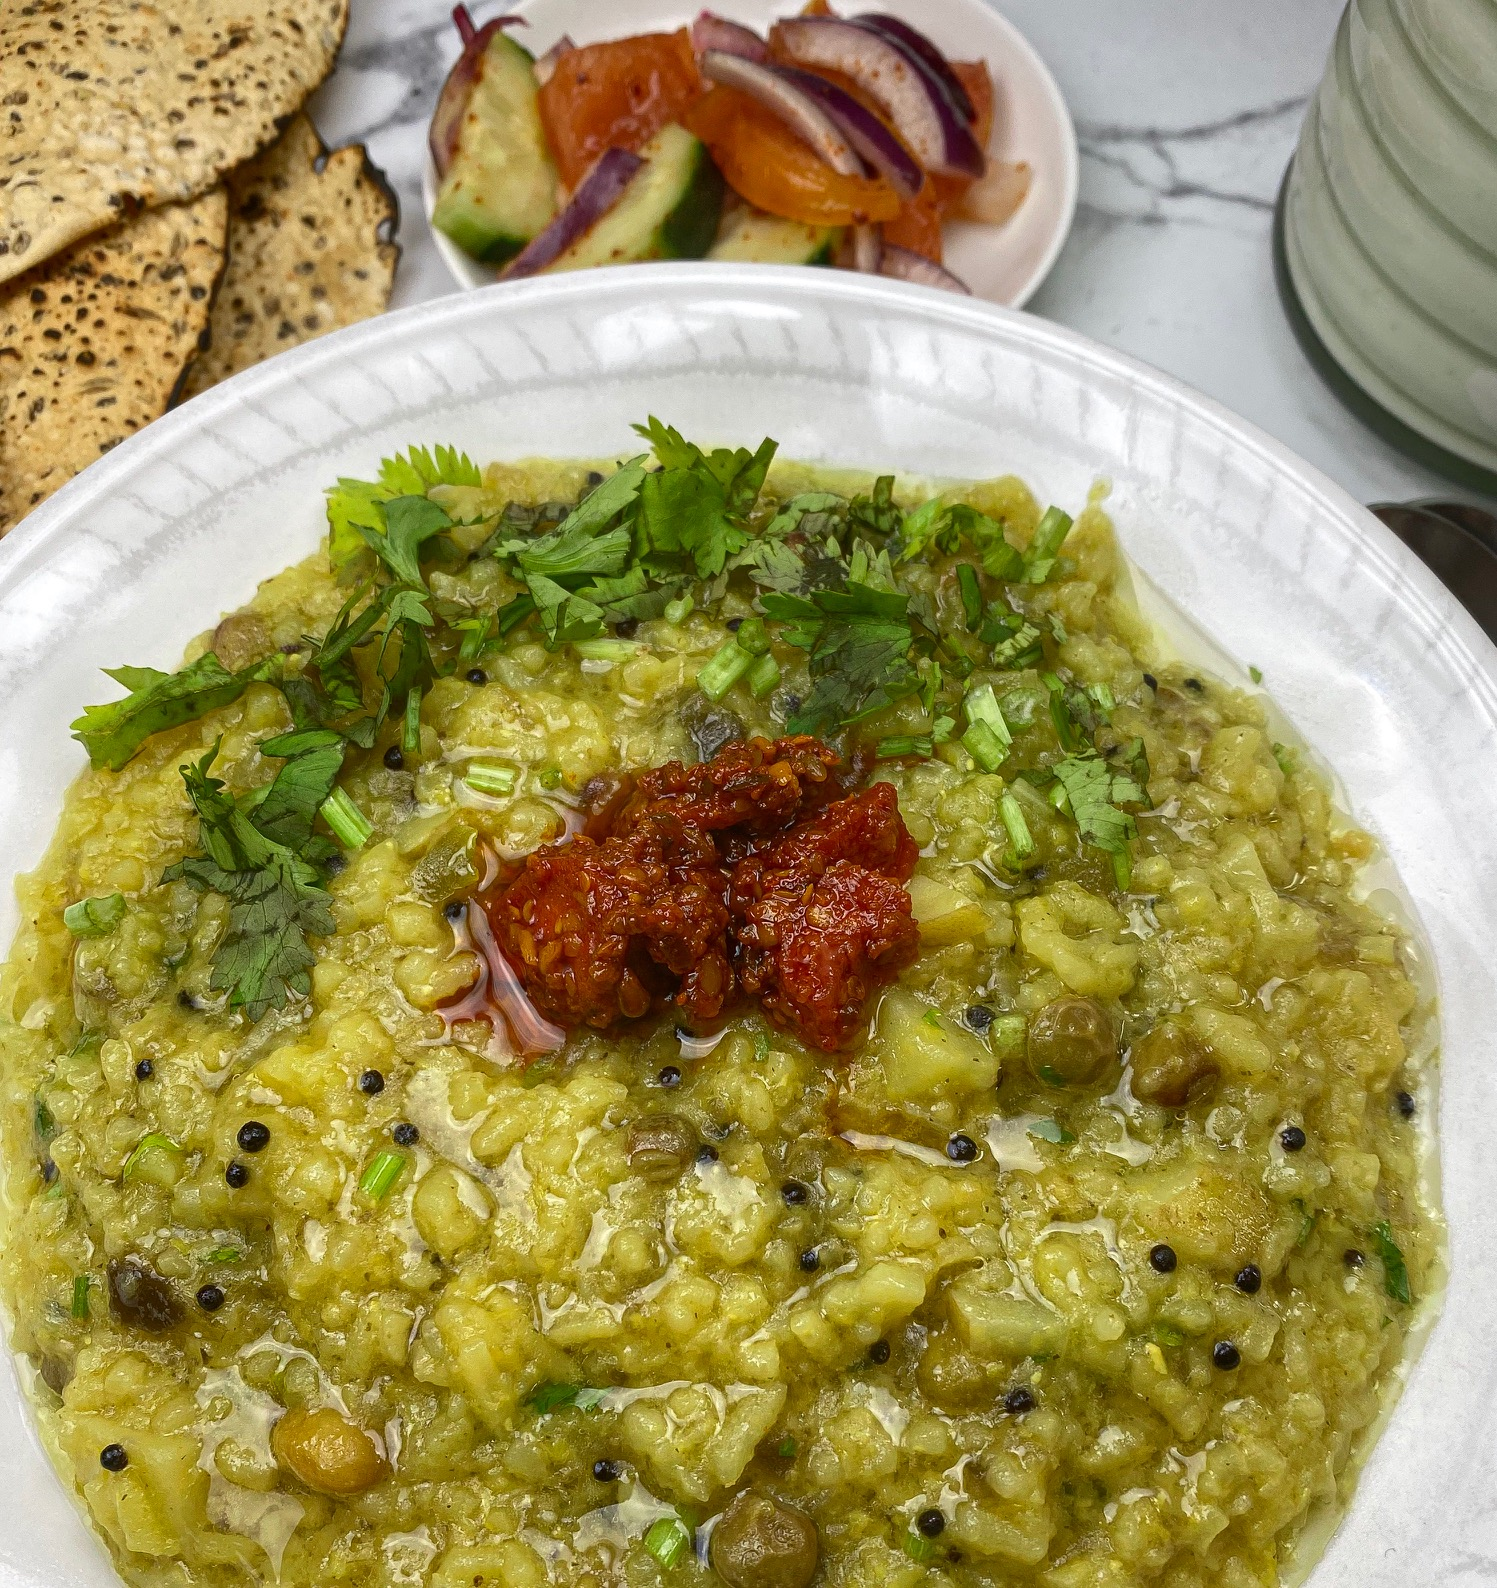 A slow cooked Gujarati porridge with rice, lentils, vegetables, and spices.